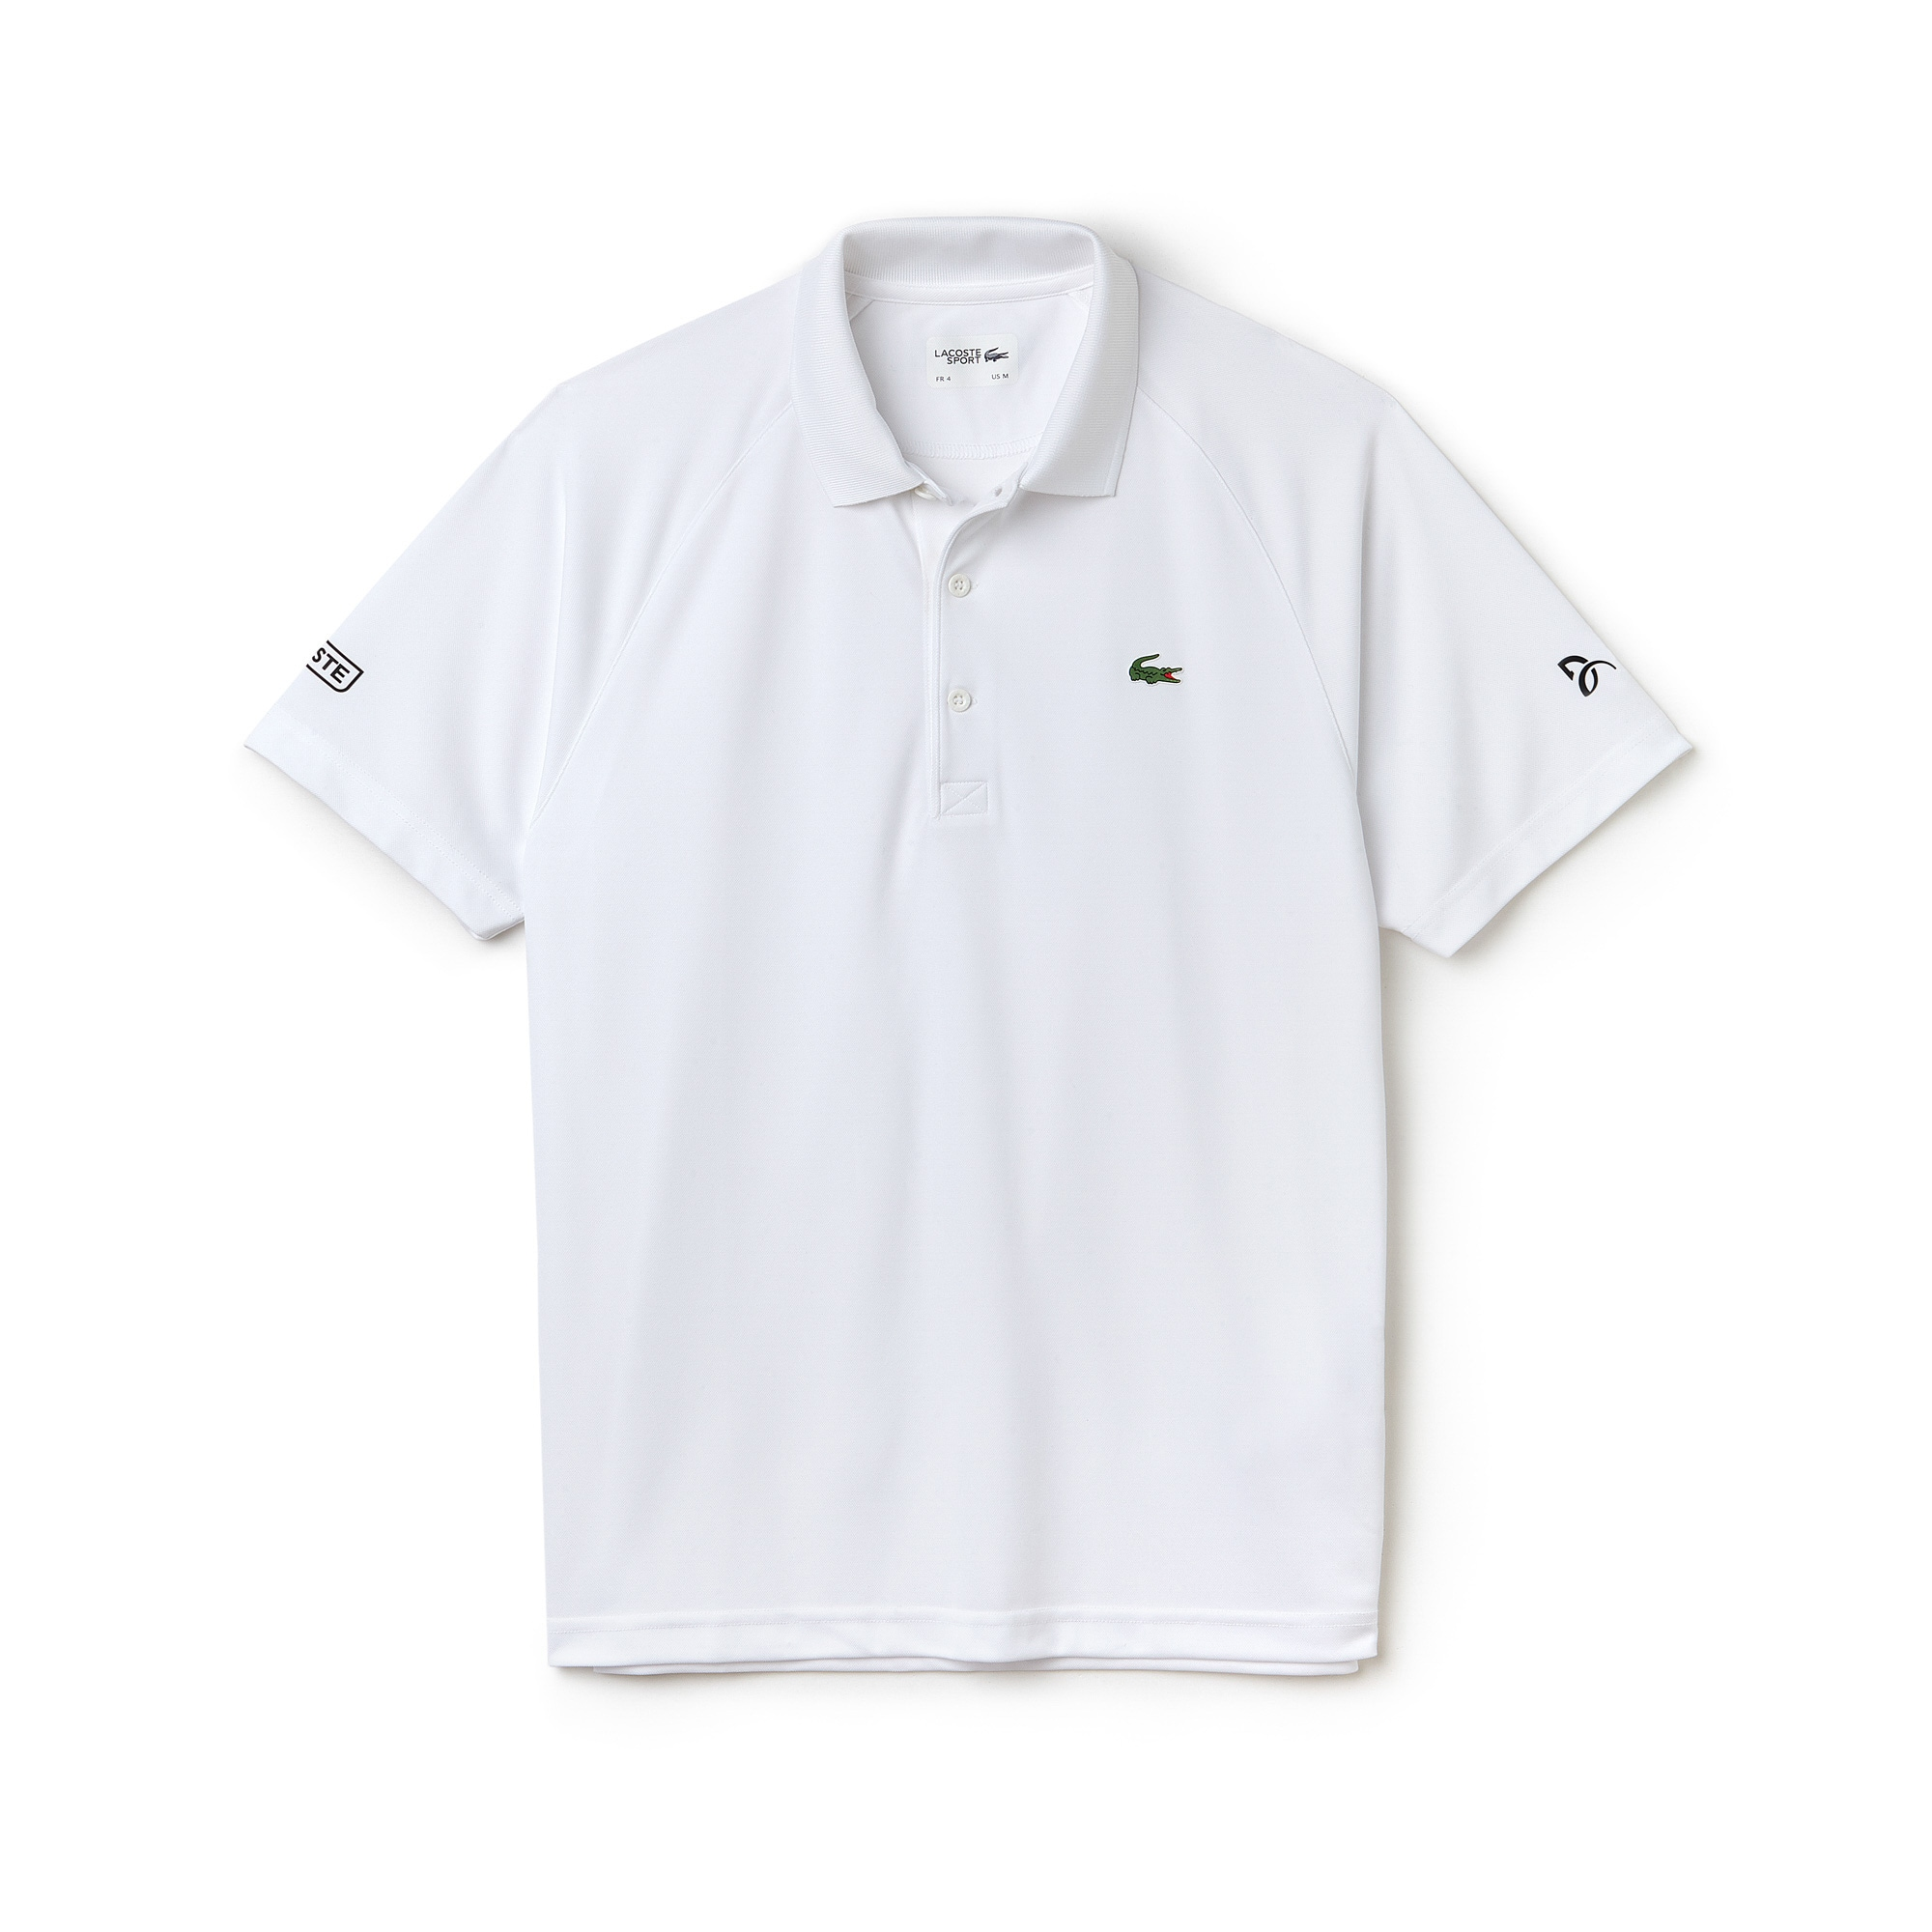 Polo Lacoste Collection for Novak Djokovic - Exclusive Green Edition